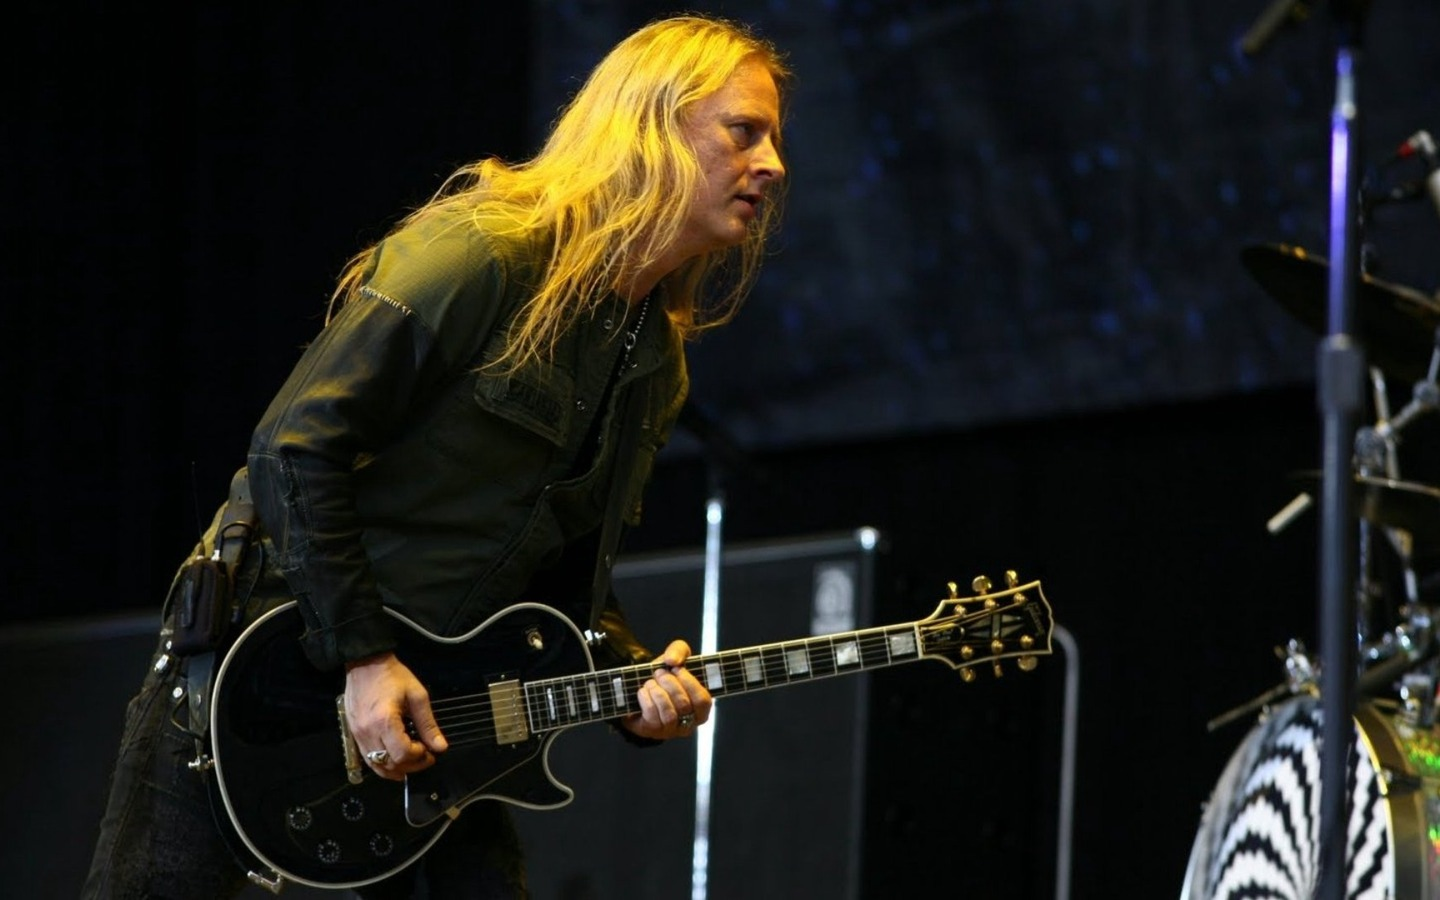 Download wallpaper 1440x900 jerry cantrell hair guitar play 1440x900